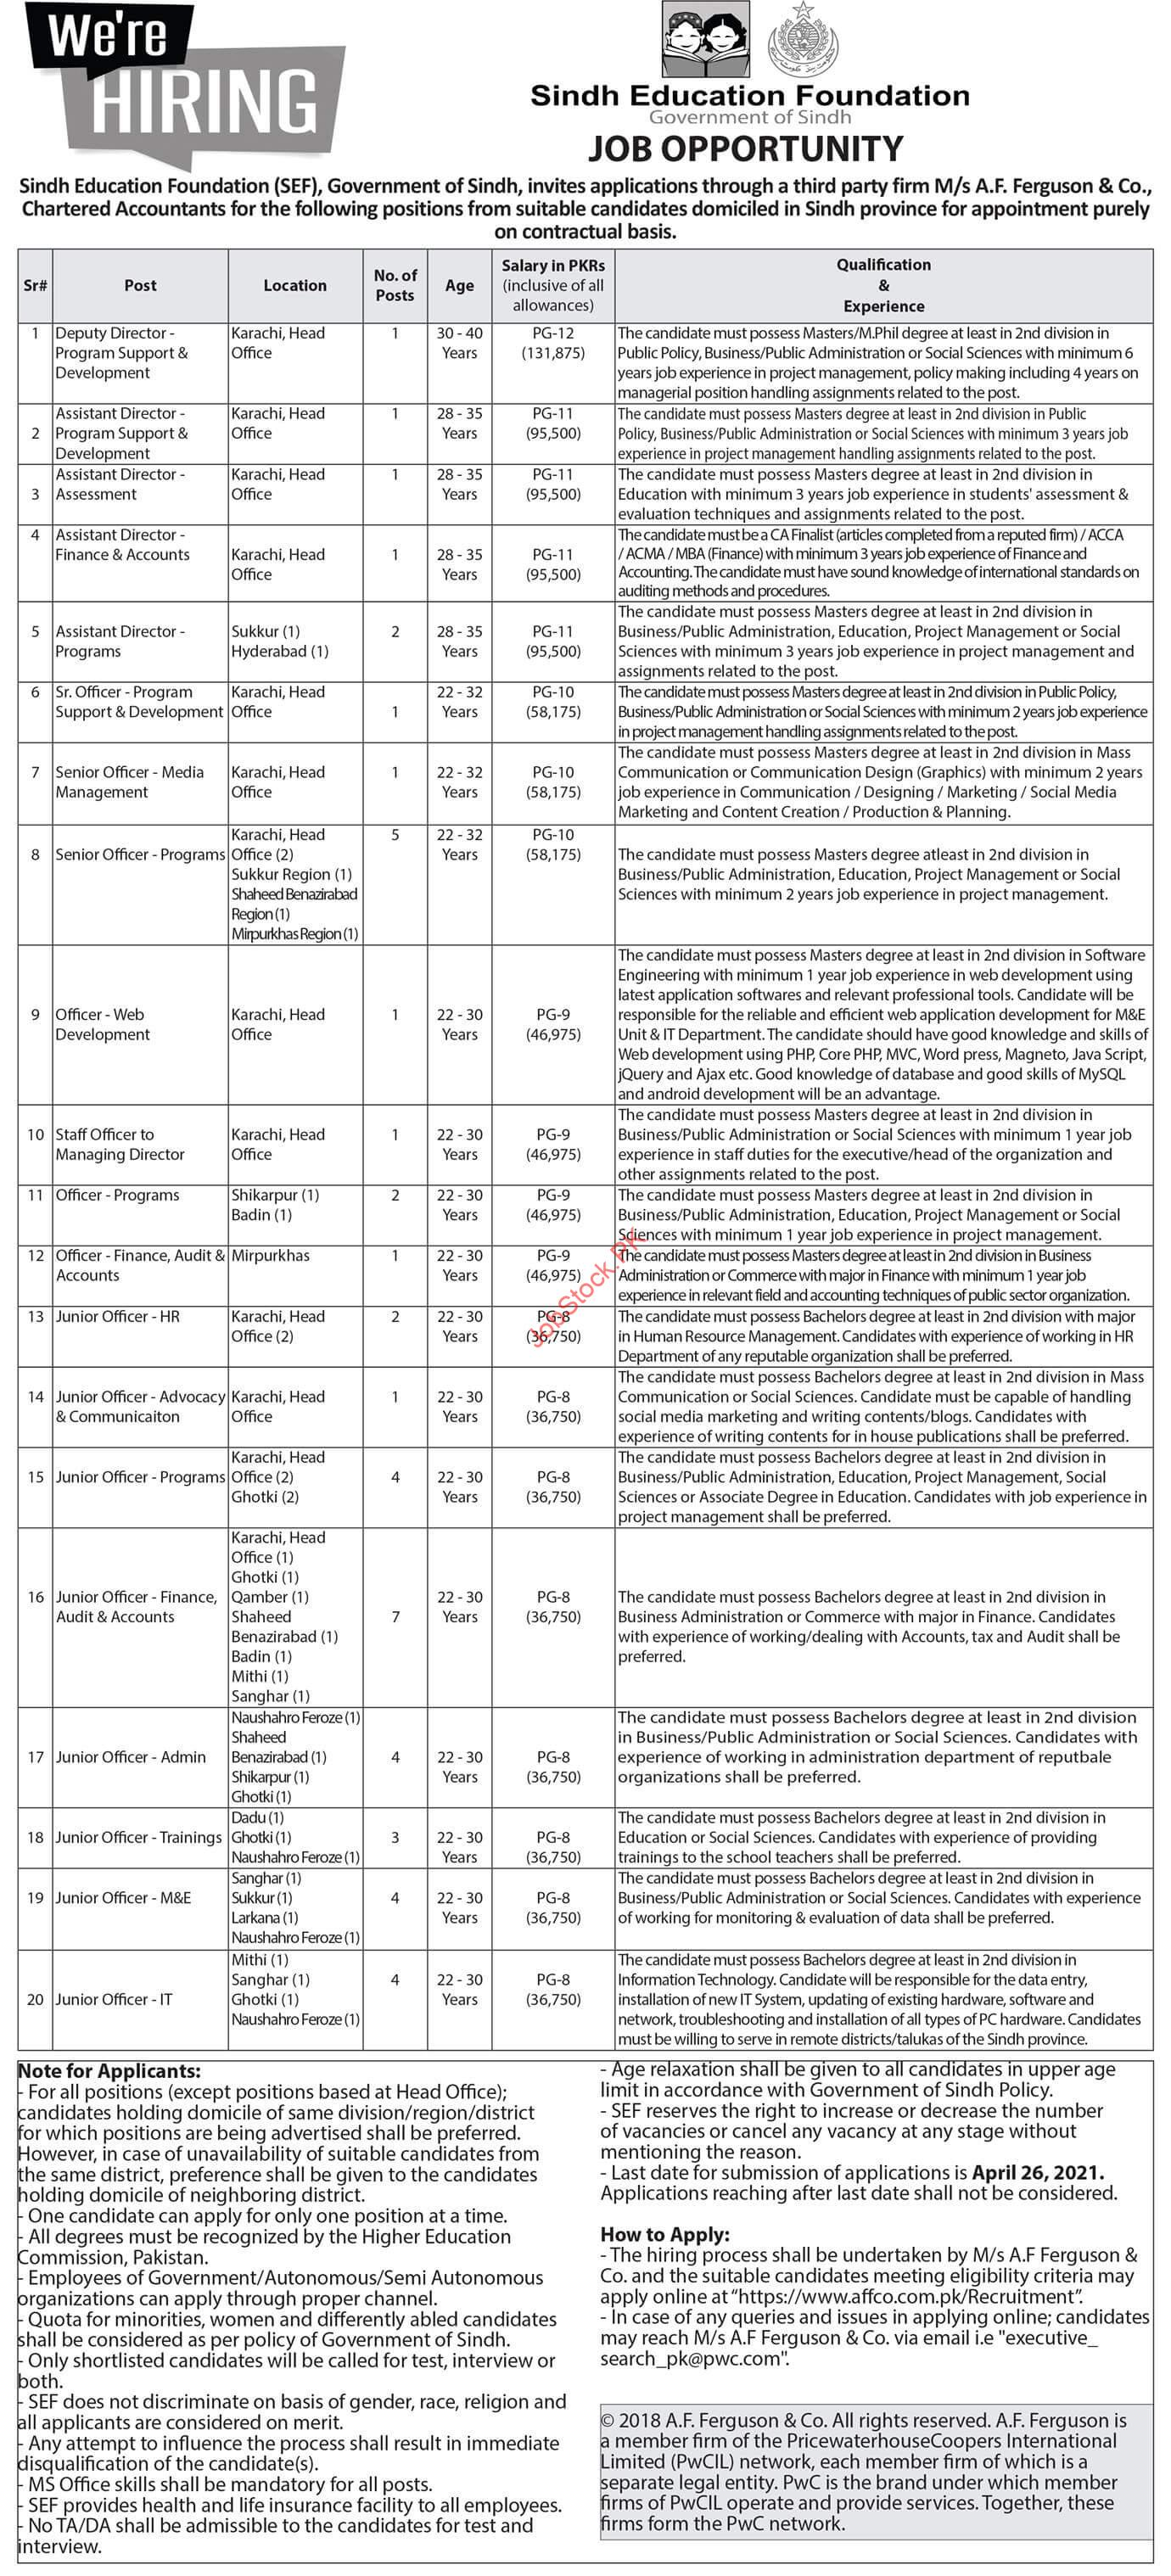 Sindh Education Foundation Jobs 2021 Advertisement